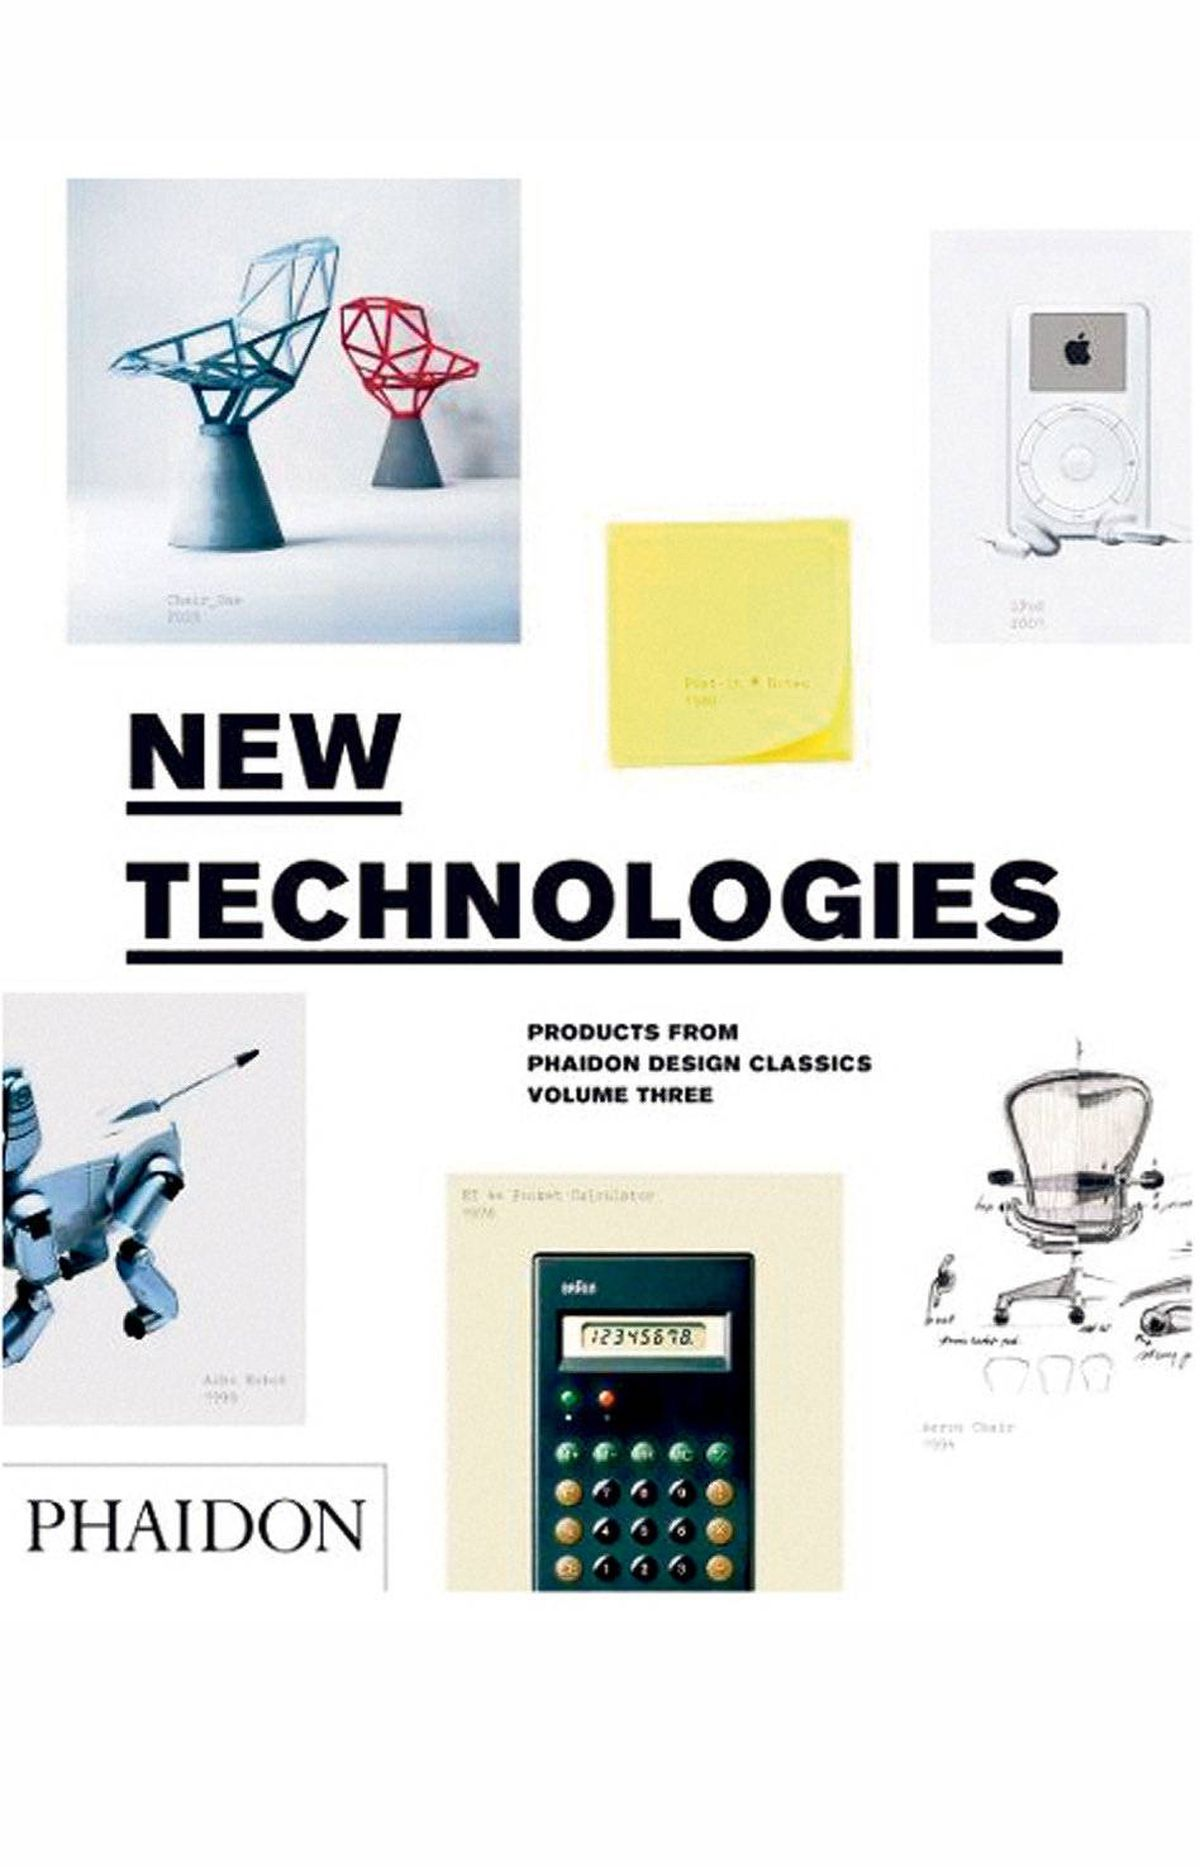 New Technologies: Products from Phaidon Design Classics, Volume 3, $49.95, The Phaidon Atlas of 21st Century World Architecture, $225 at Design Within Reach (www.dwr.com).